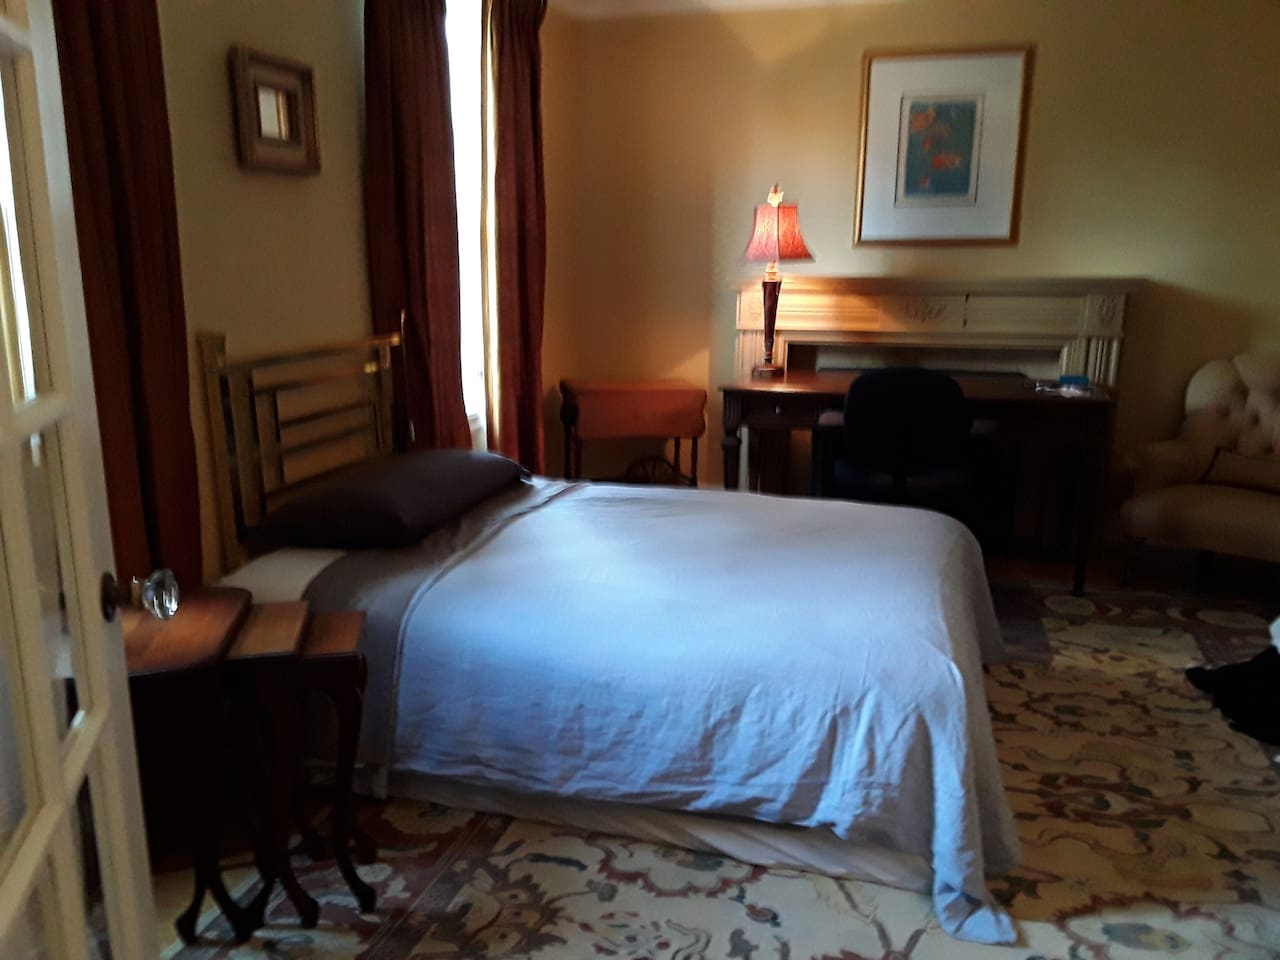 Large spacious room with queen bed, and large working desk.  Window opens for cool breeze on warm days.  Comfortable sitting chairs for breaks or meetings.  No stairs to climb to access half bathroom. Shared shower upstairs. Enjoy the gardens.